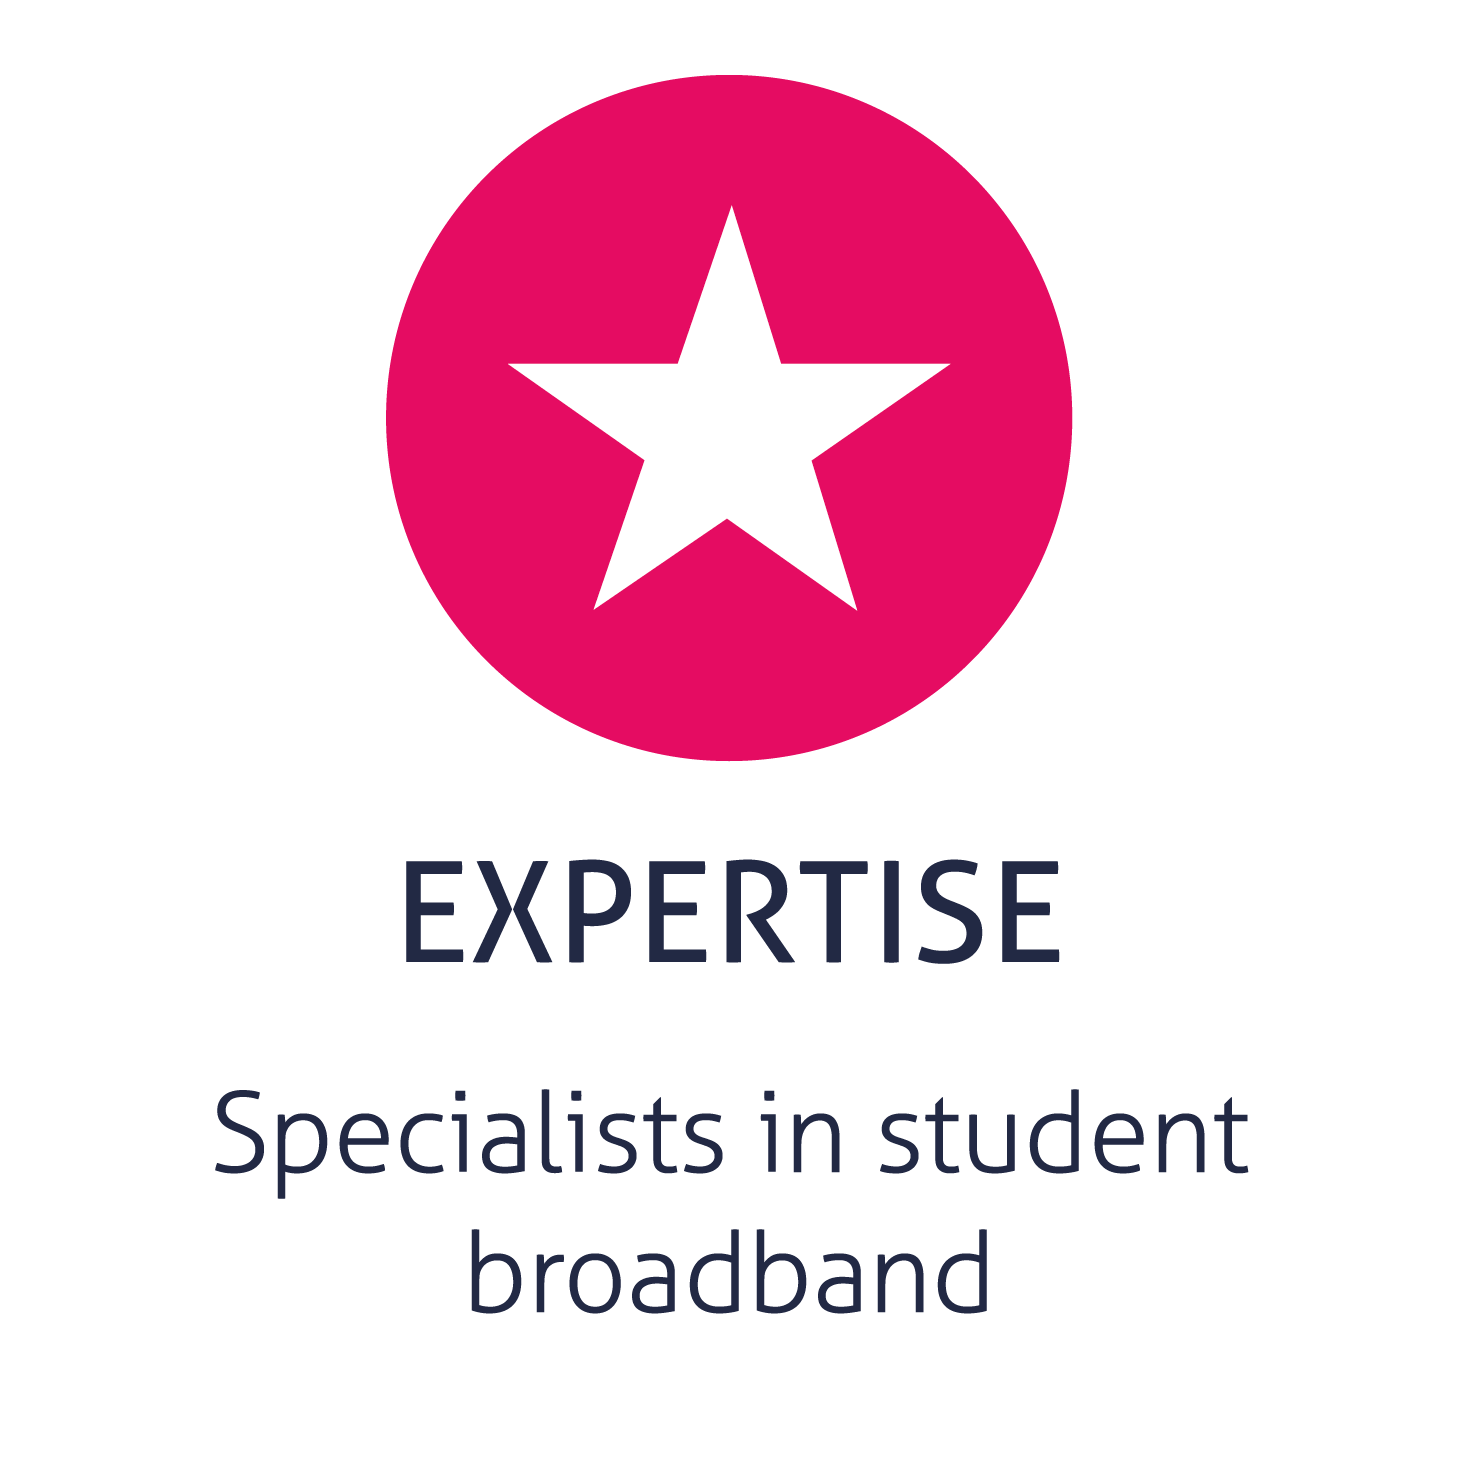 Specialists in student broadband